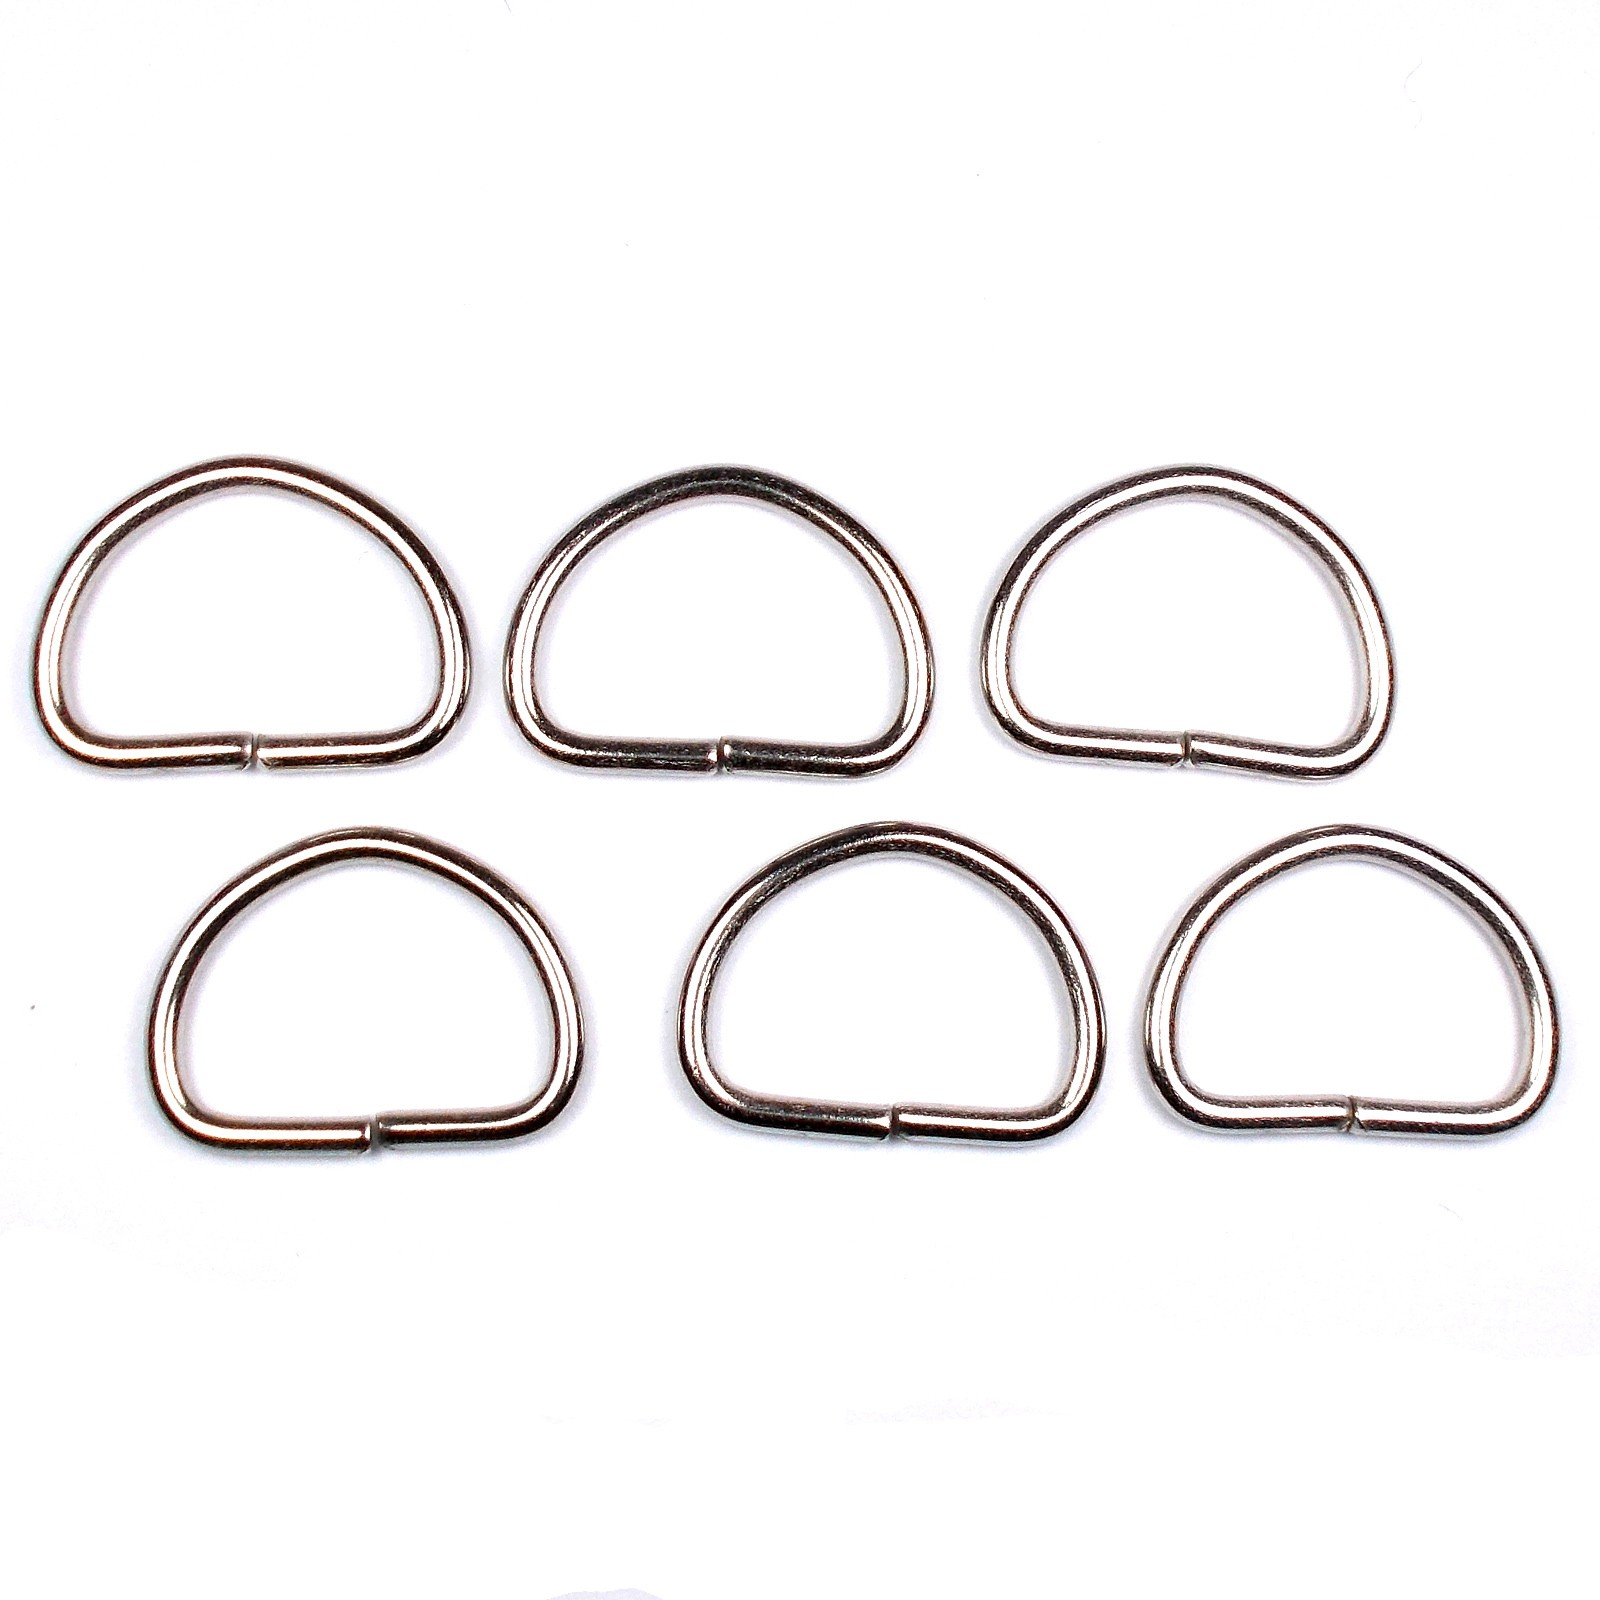 Silver Metal D Rings 26mm Pack of 6